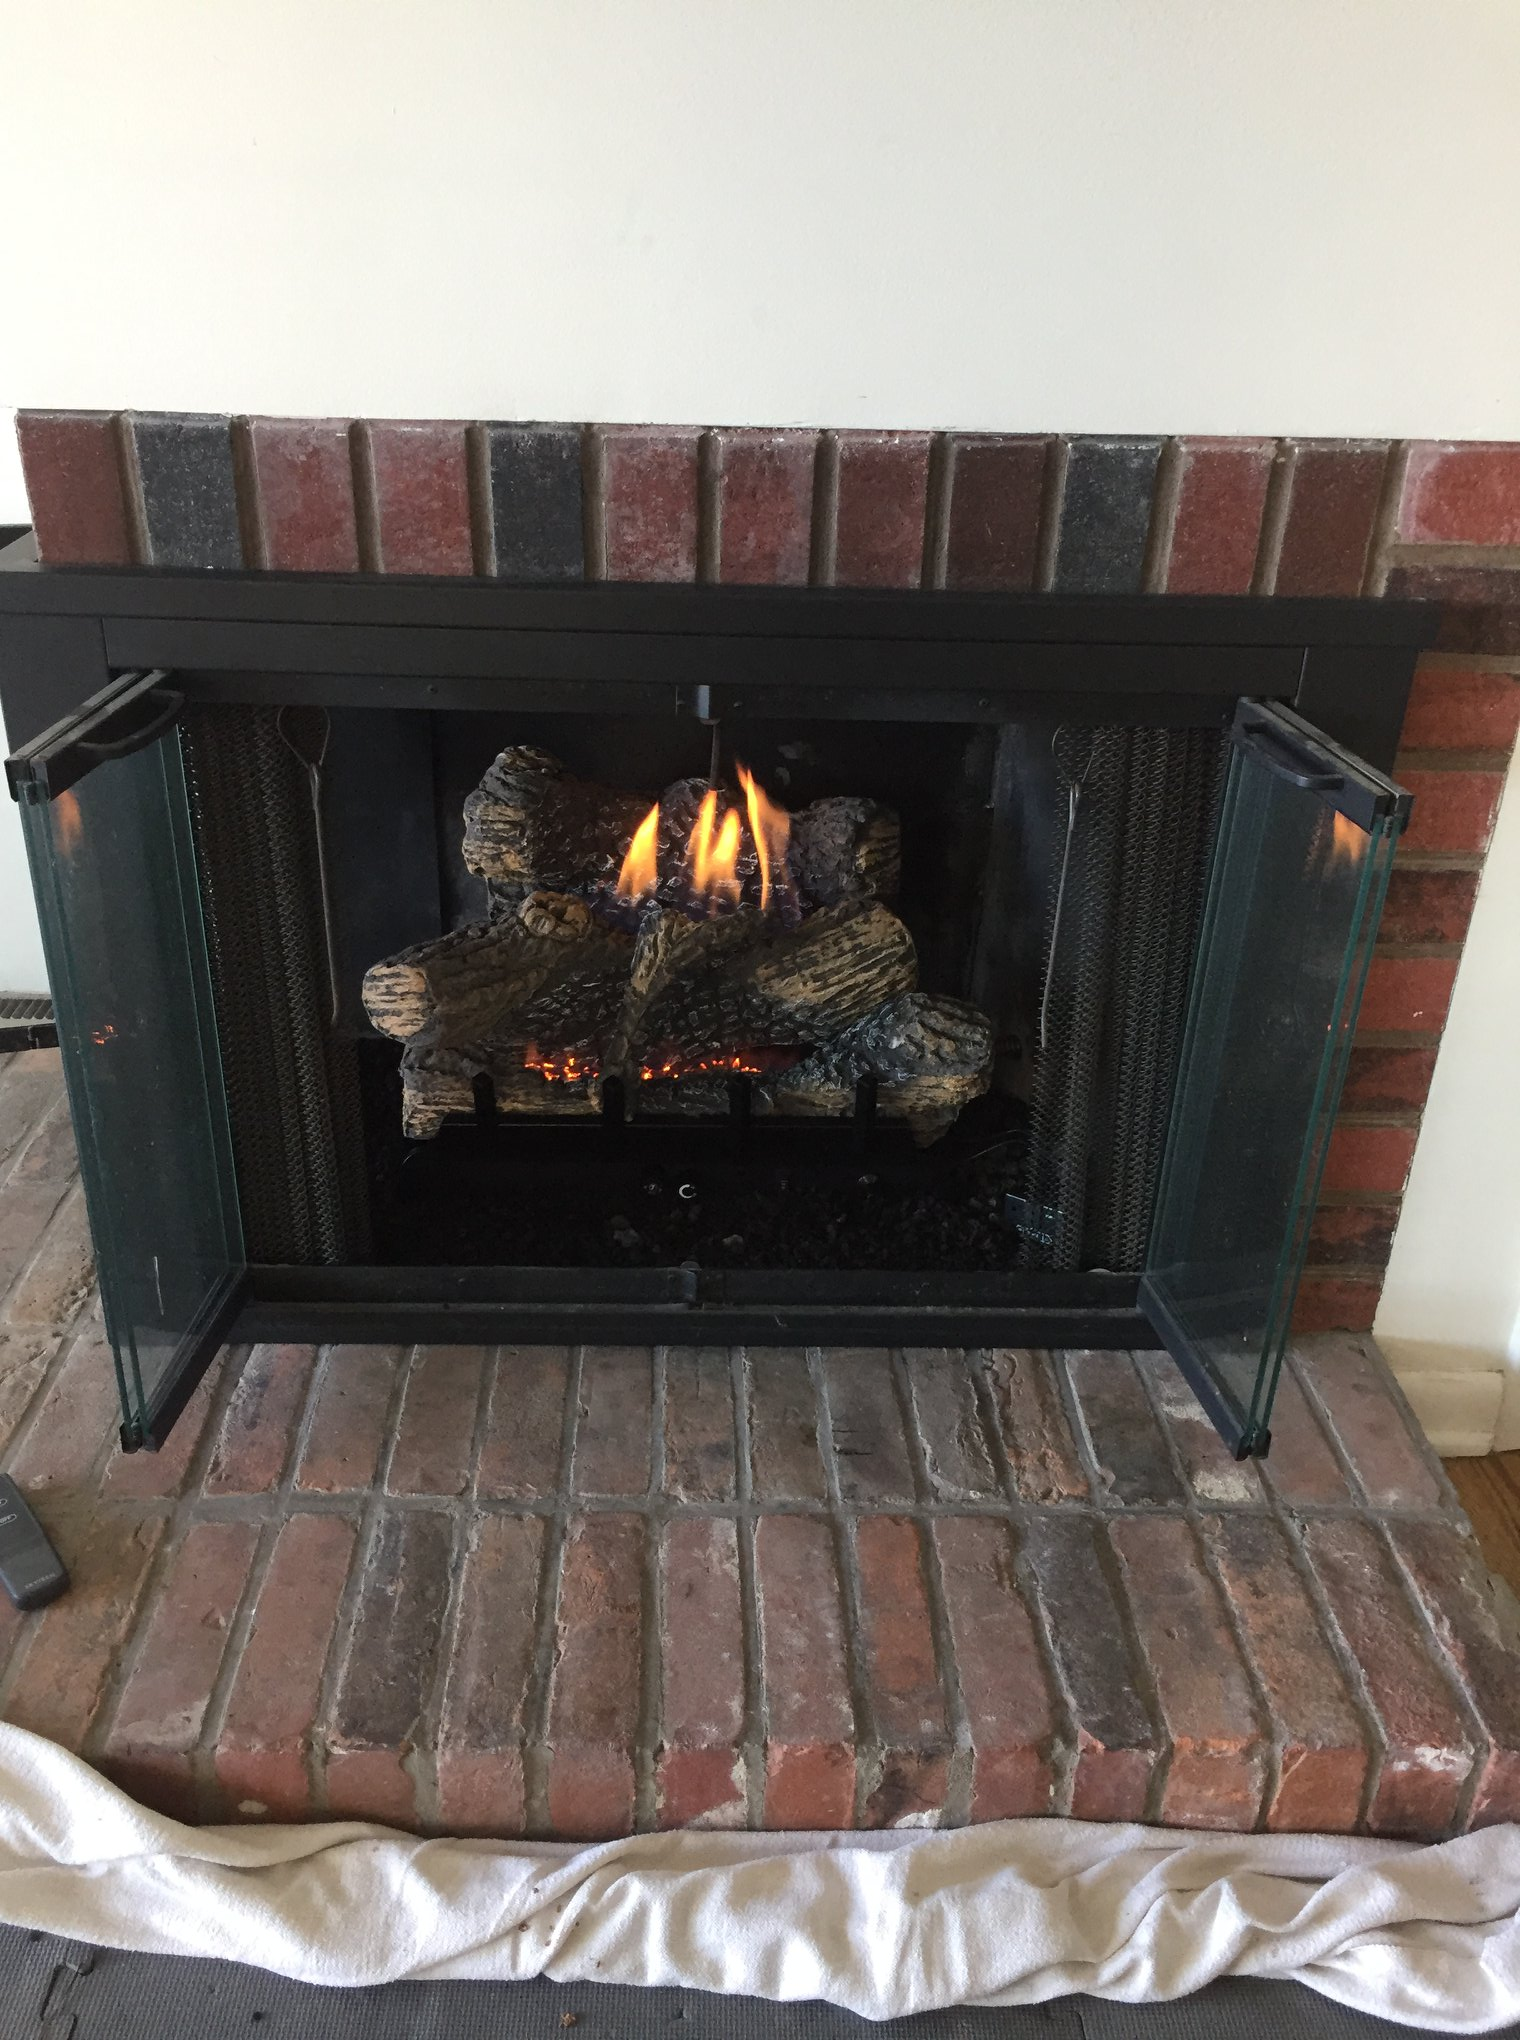 Recently installed natural gas log set into wood burning fireplace.